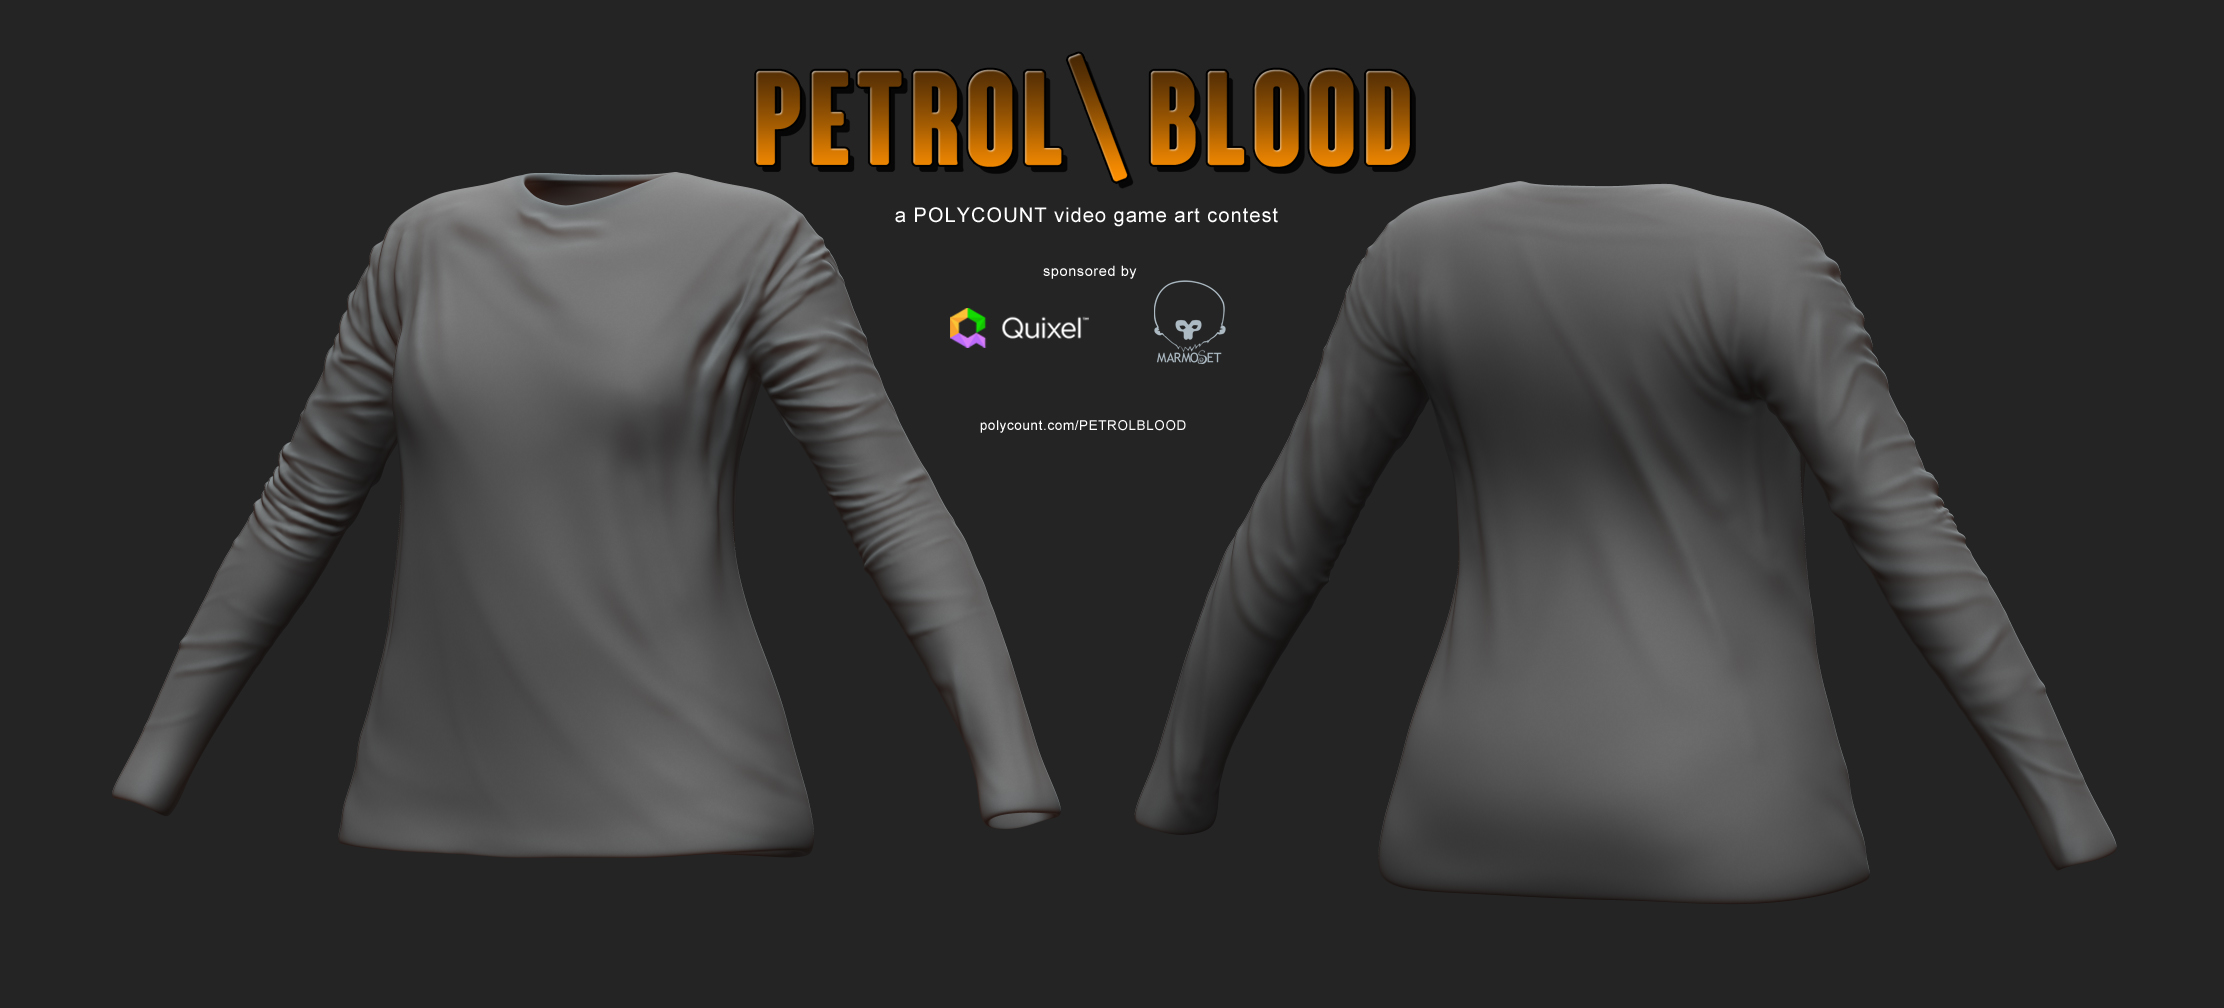 petroblood_wip04_by_theartistictiger-d7rkmfn.jpg